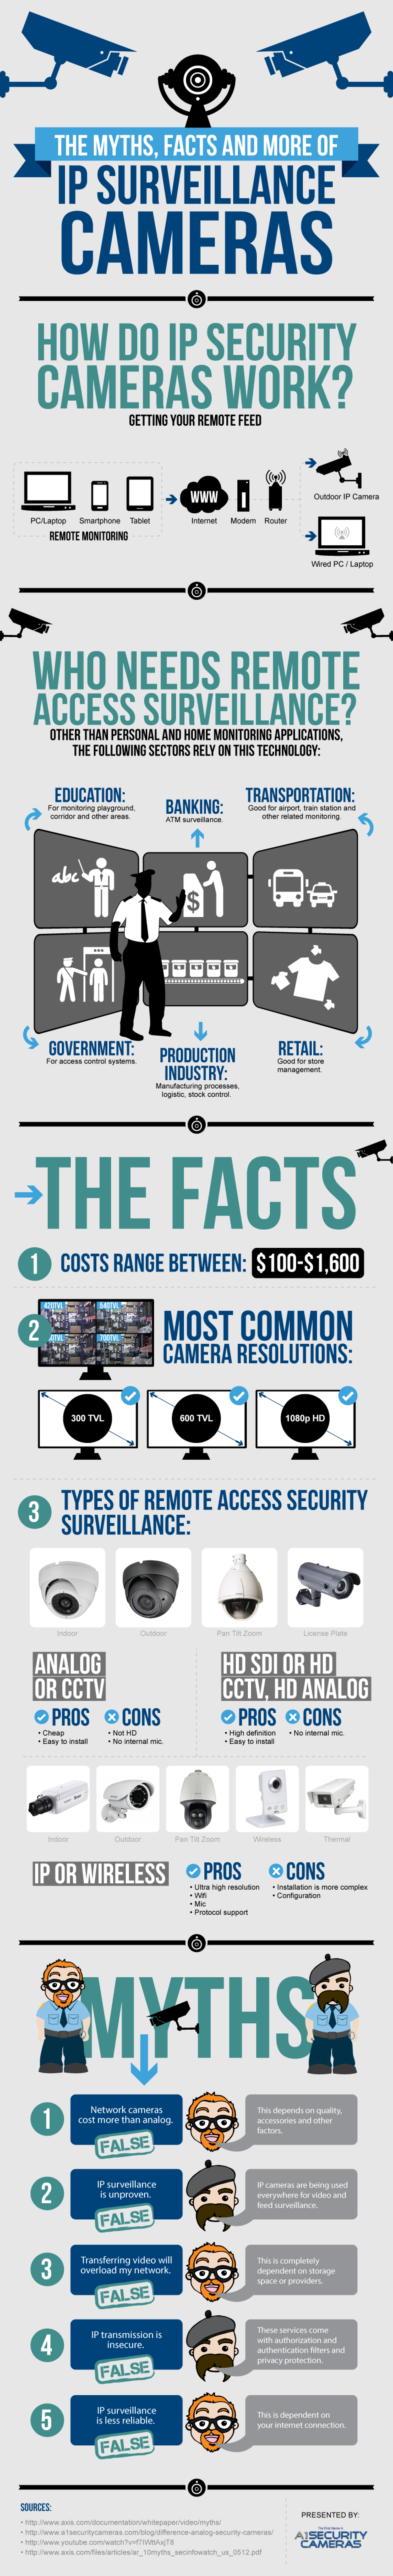 The Myths, Facts and More of IP Surveillance Cameras Infographic